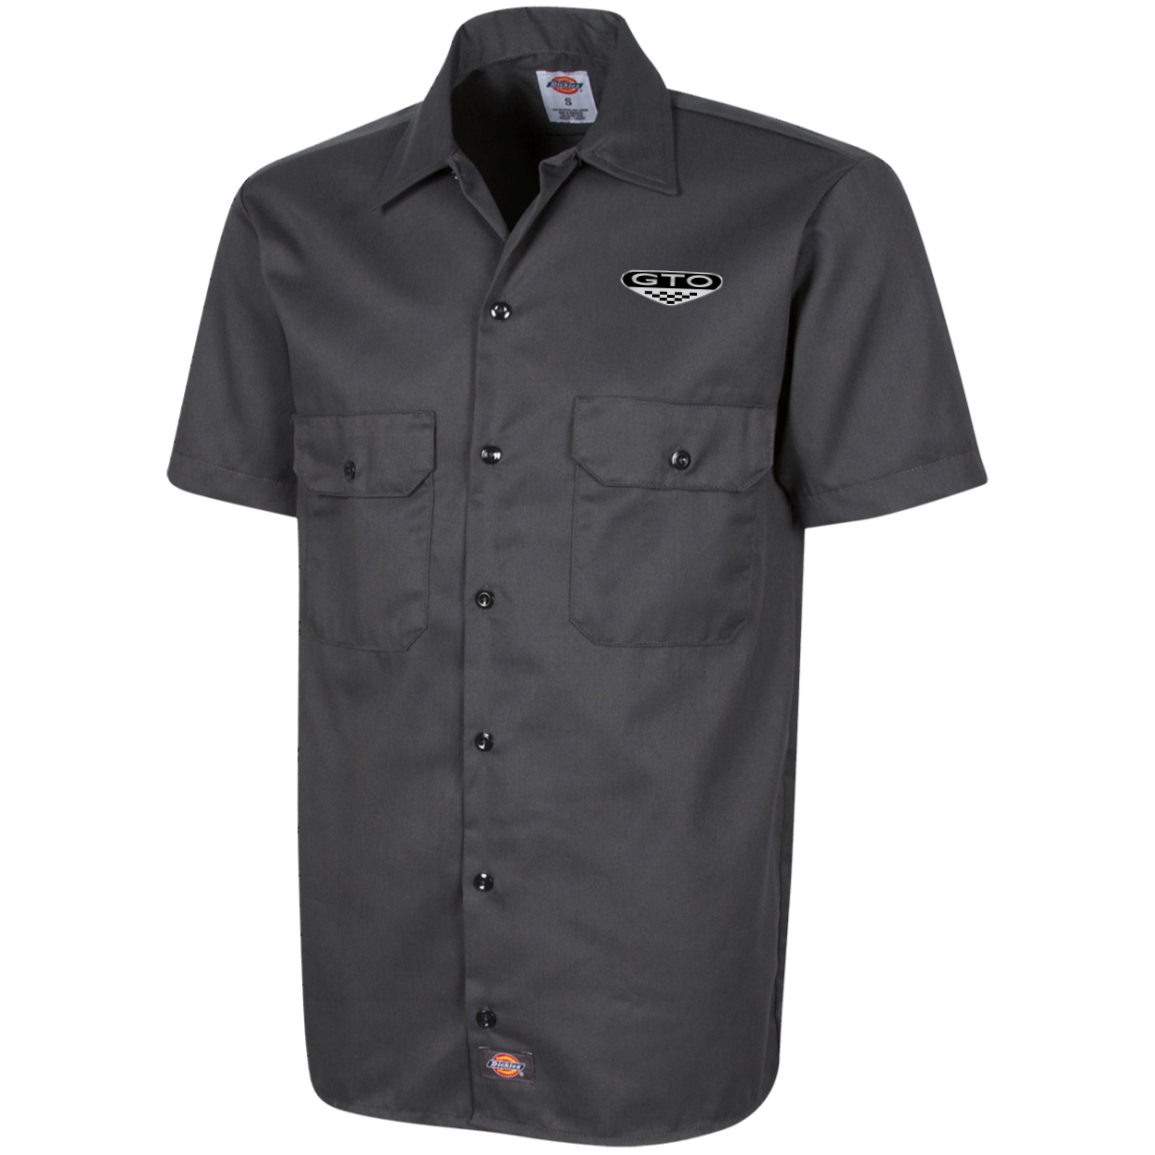 Dickies GTO Work Shirt, Work Apparel - MotorClub Clothes